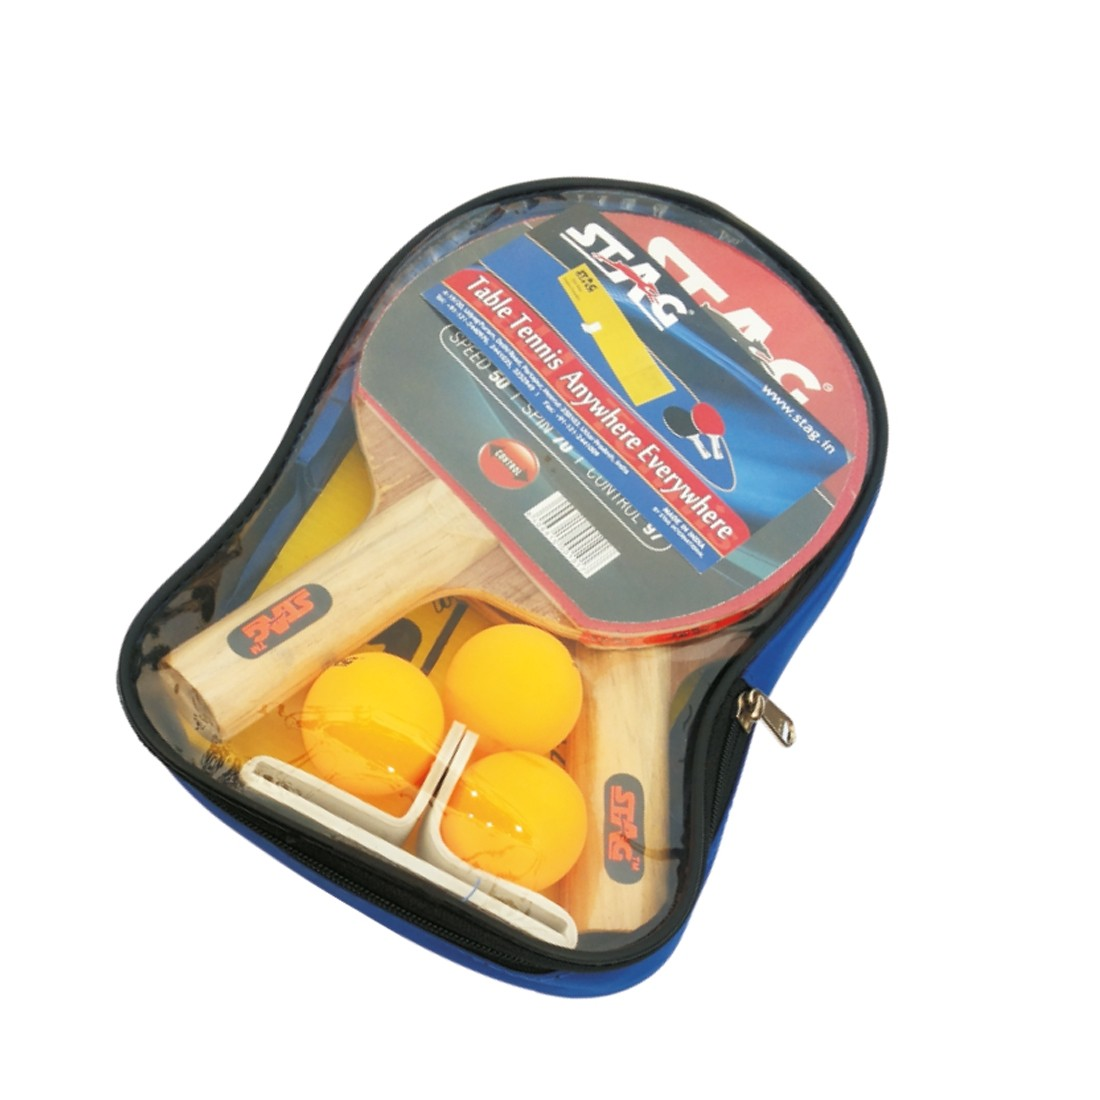 STAG PLAY SET 2 BATS, 3 BALLS AND A NET SET (ANYWHERE EVERYWHERE NET)